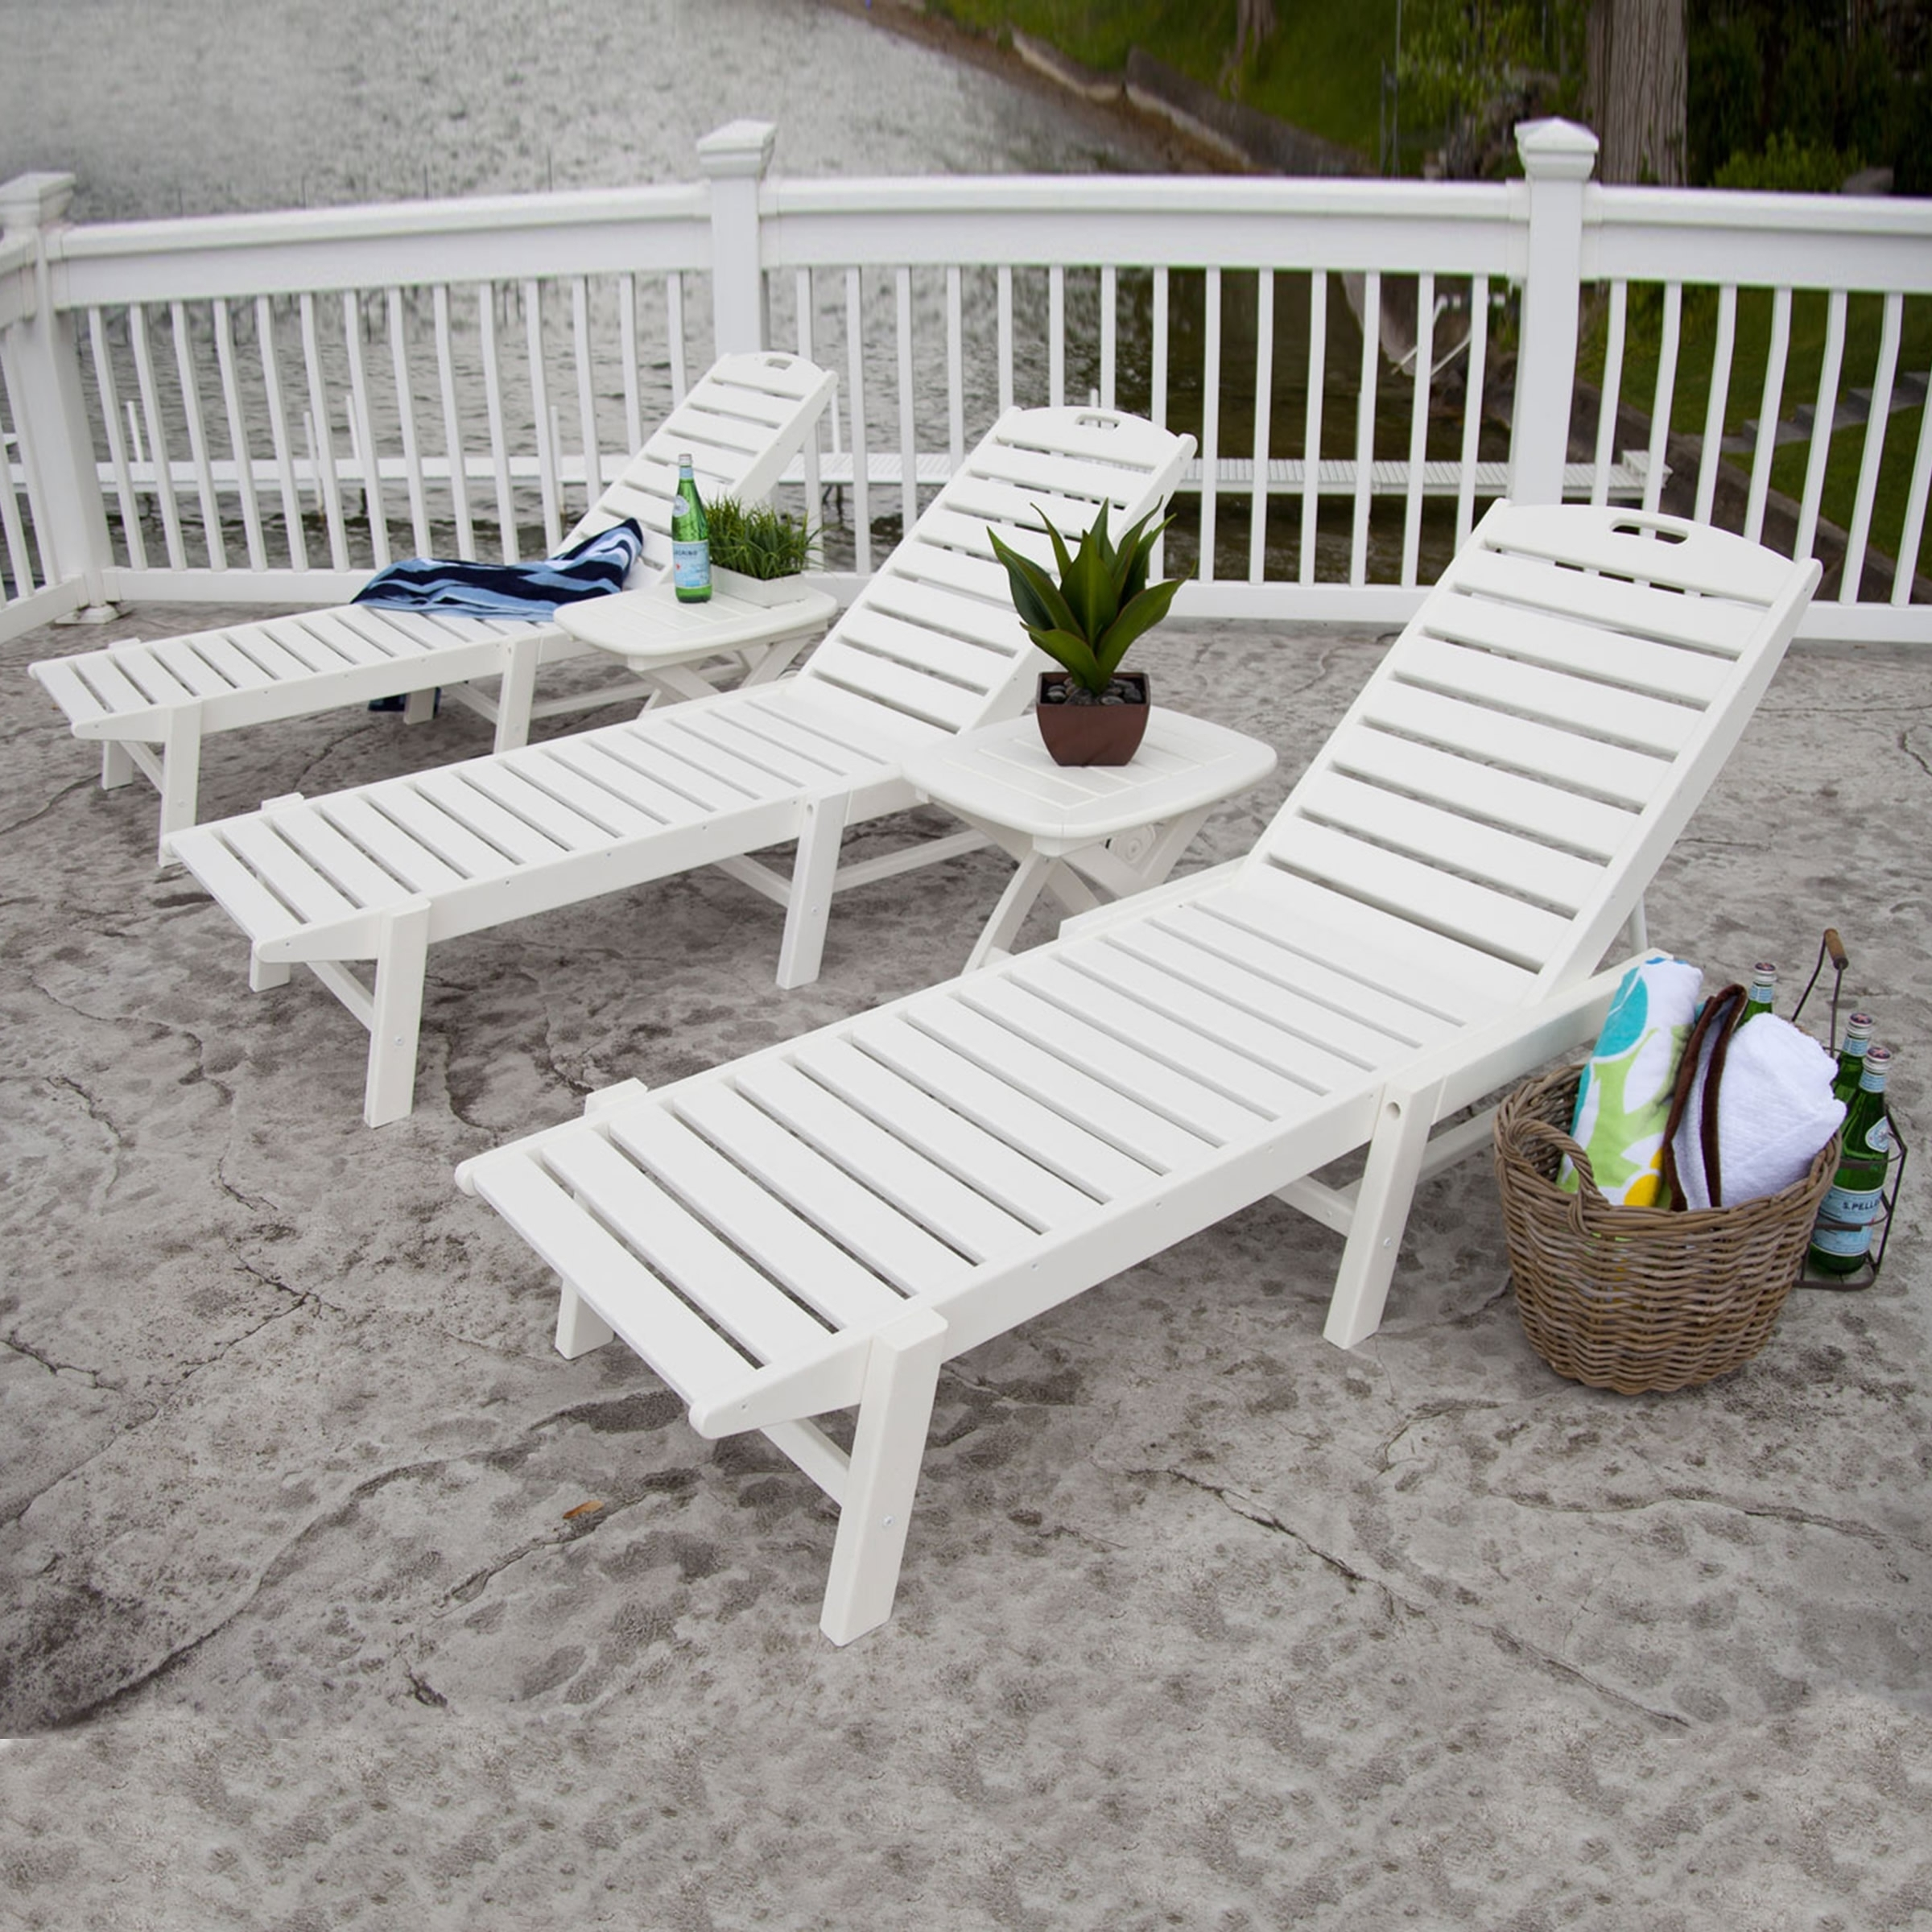 Polywood Chaise Lounges Inside Fashionable Polywood Nautical Wheeled Chaise Lounge Set (View 9 of 15)